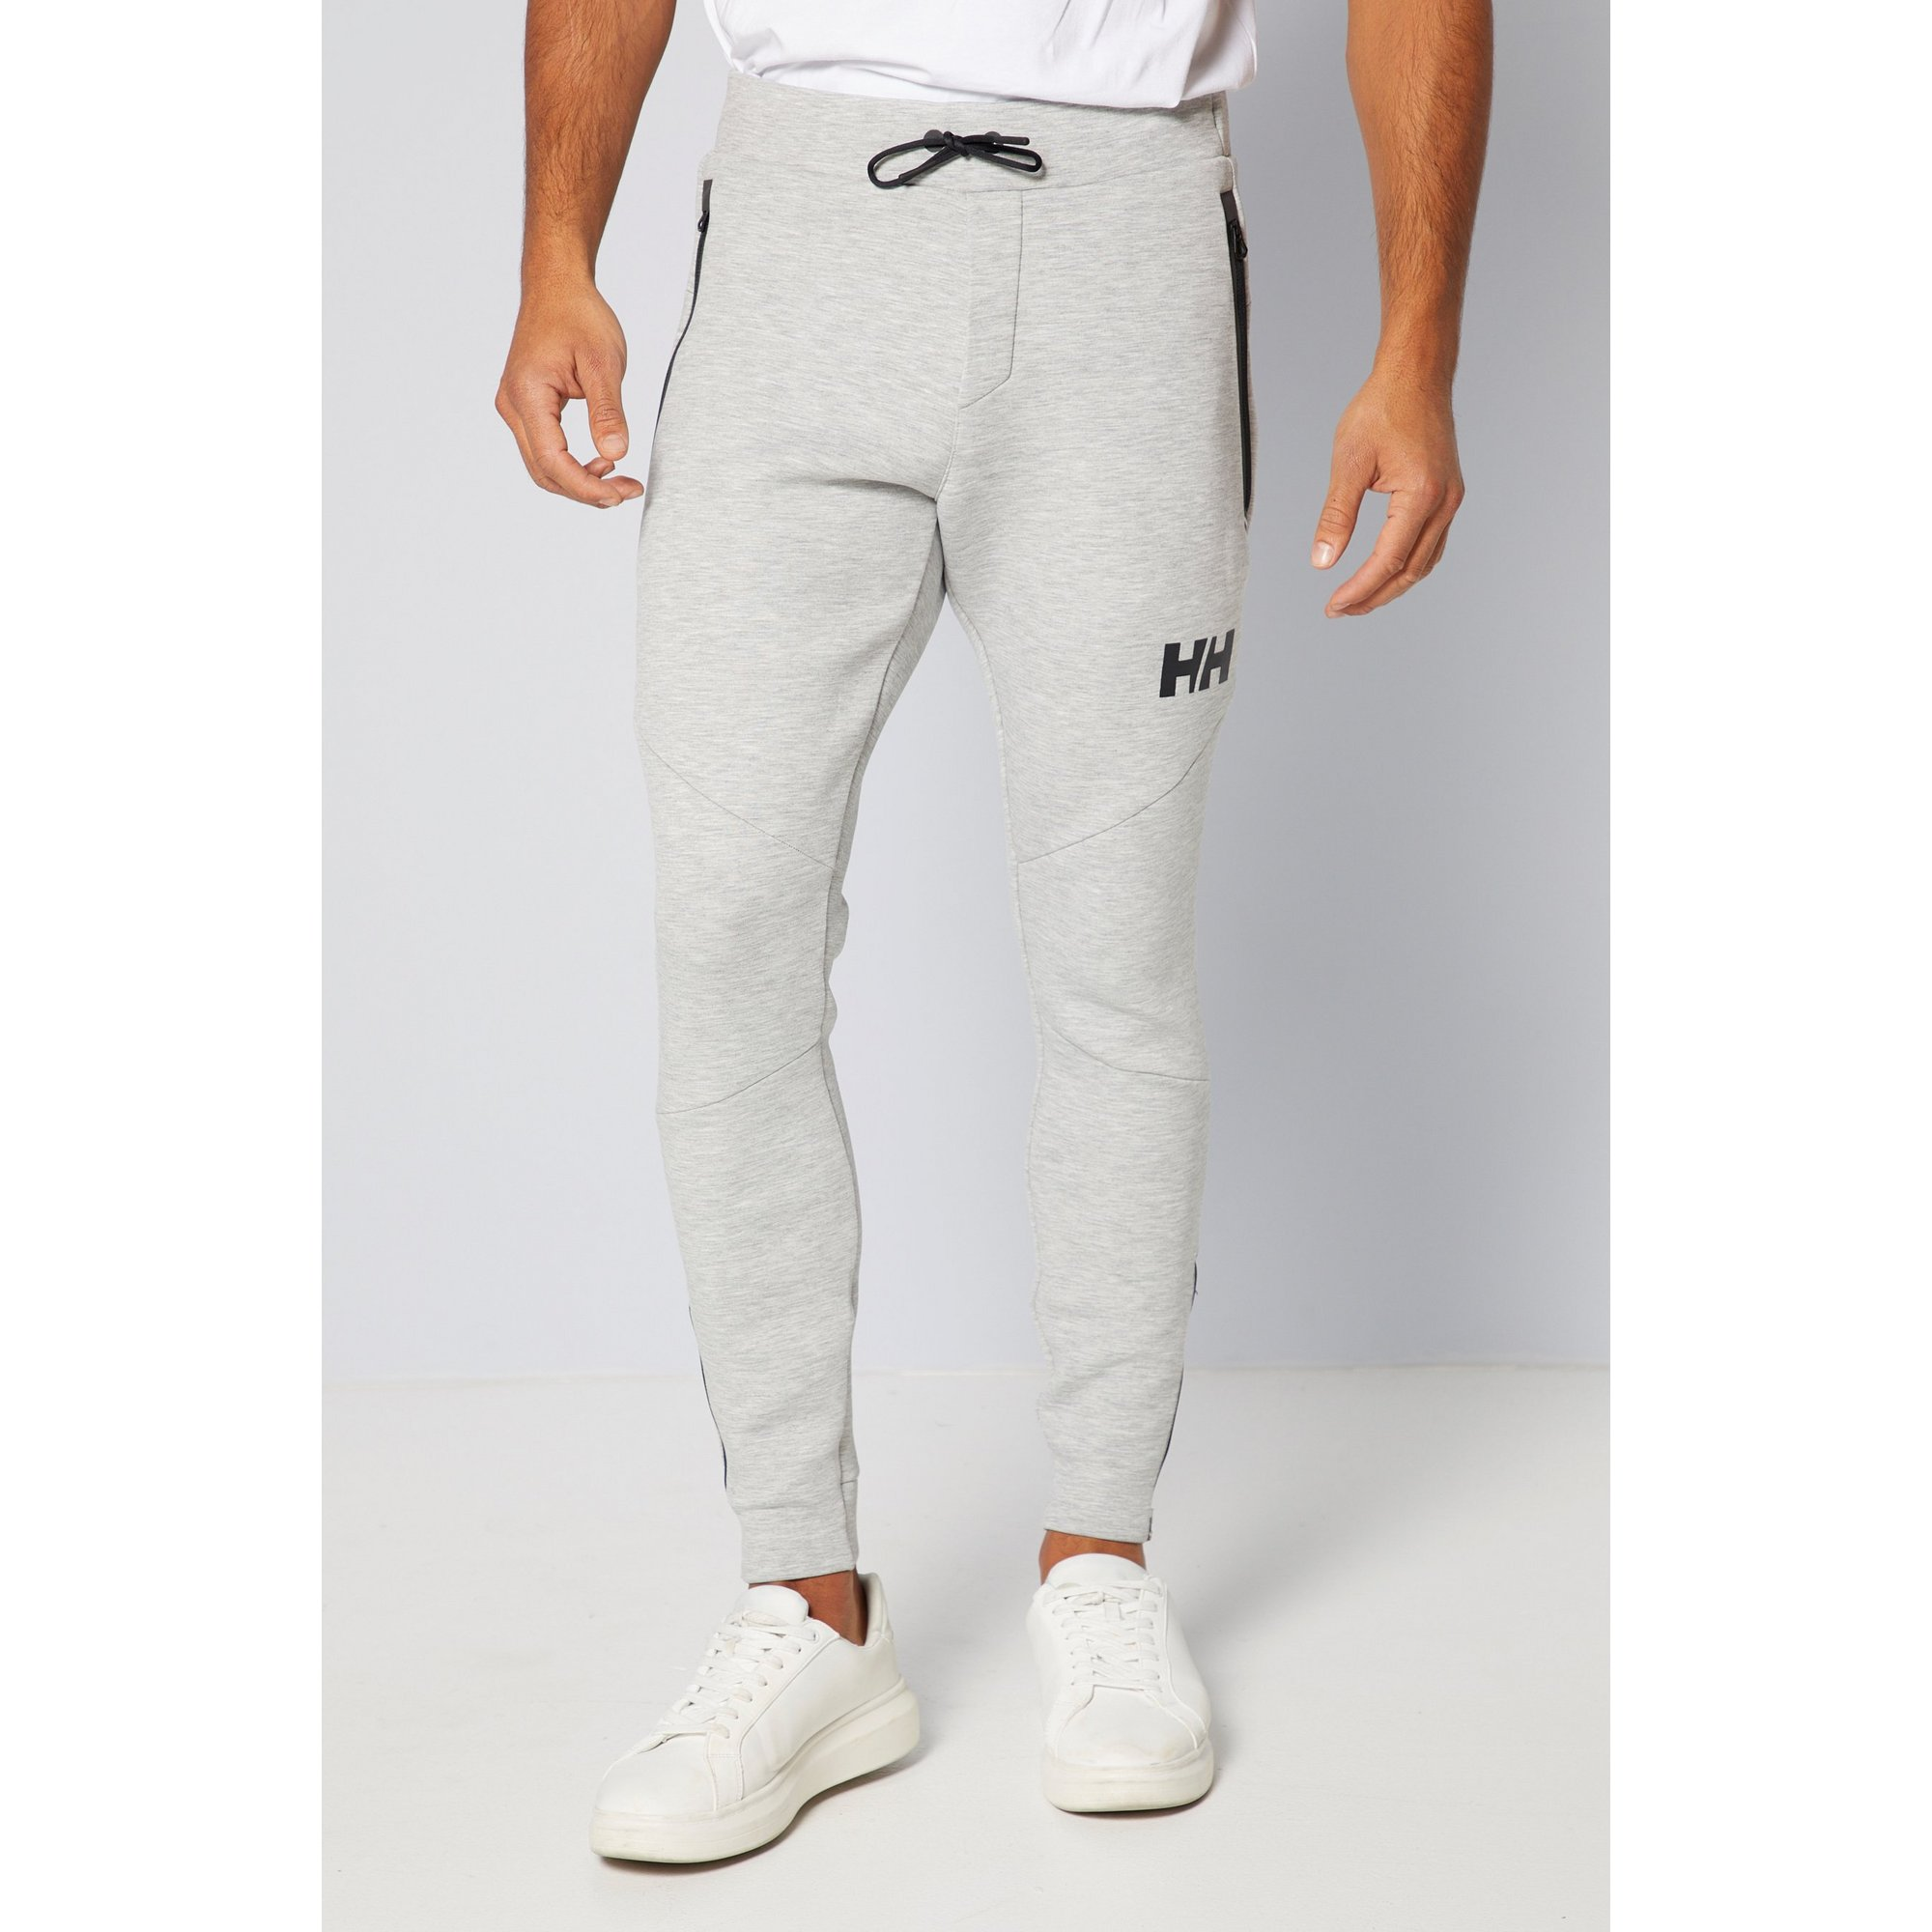 Image of Helly Hansen Ocean Joggers